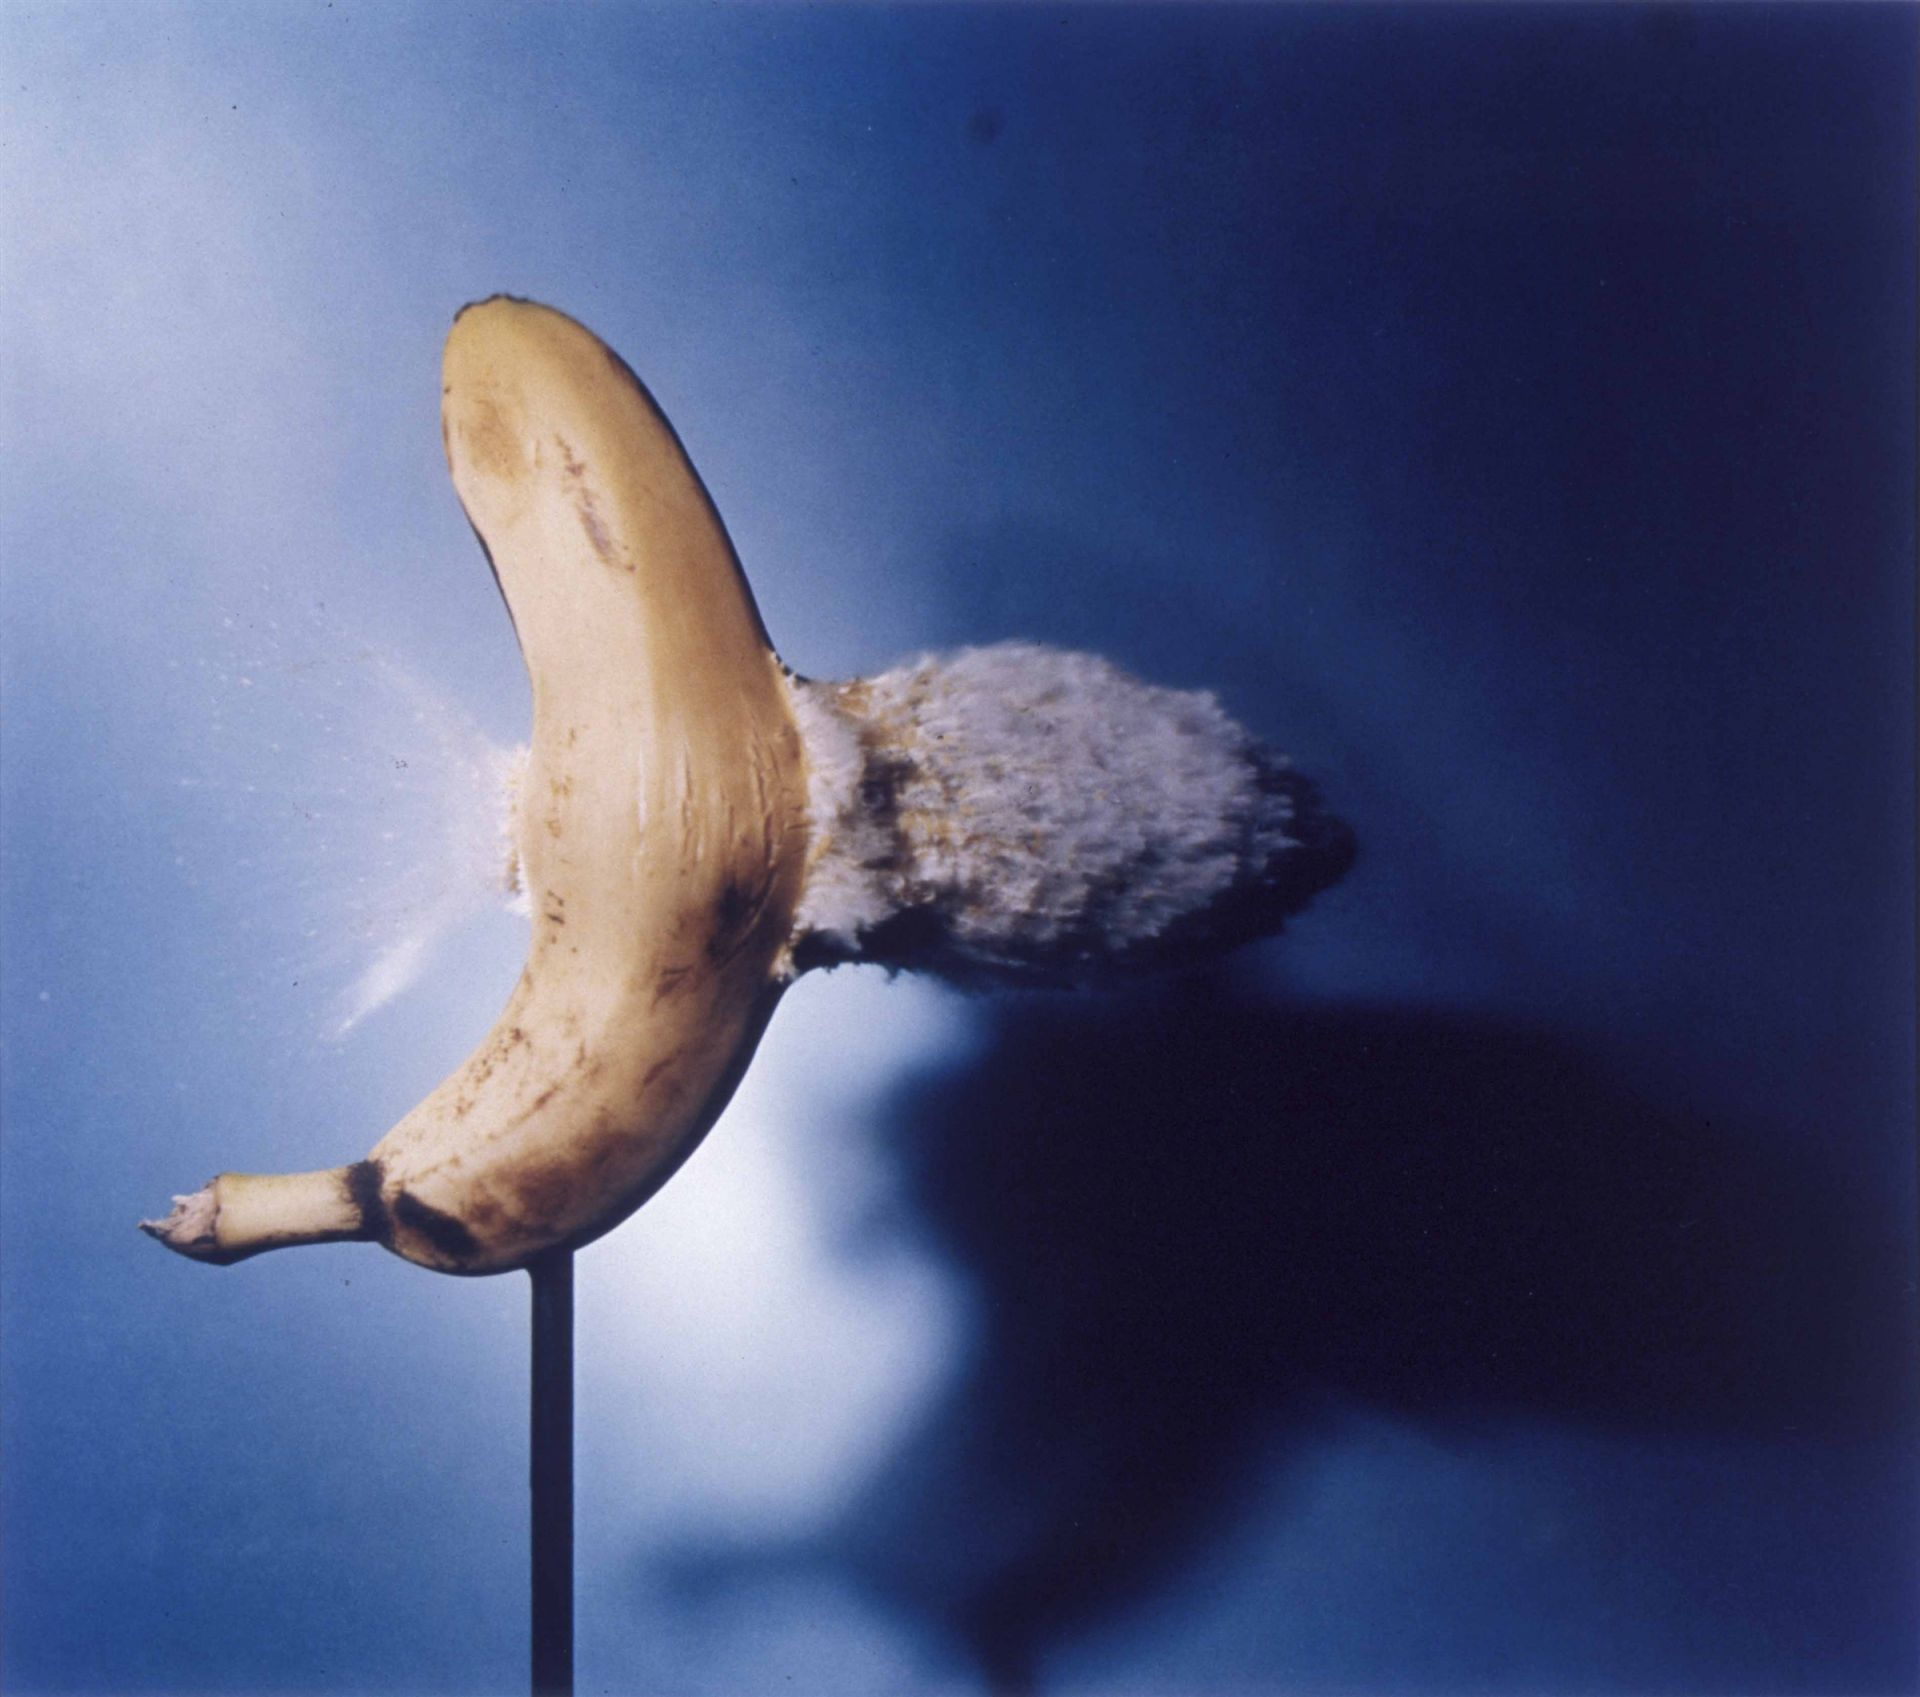 <i>Bullet Through Banana,</i> 1964<br> dye transfer<br> 14 x 16 inches